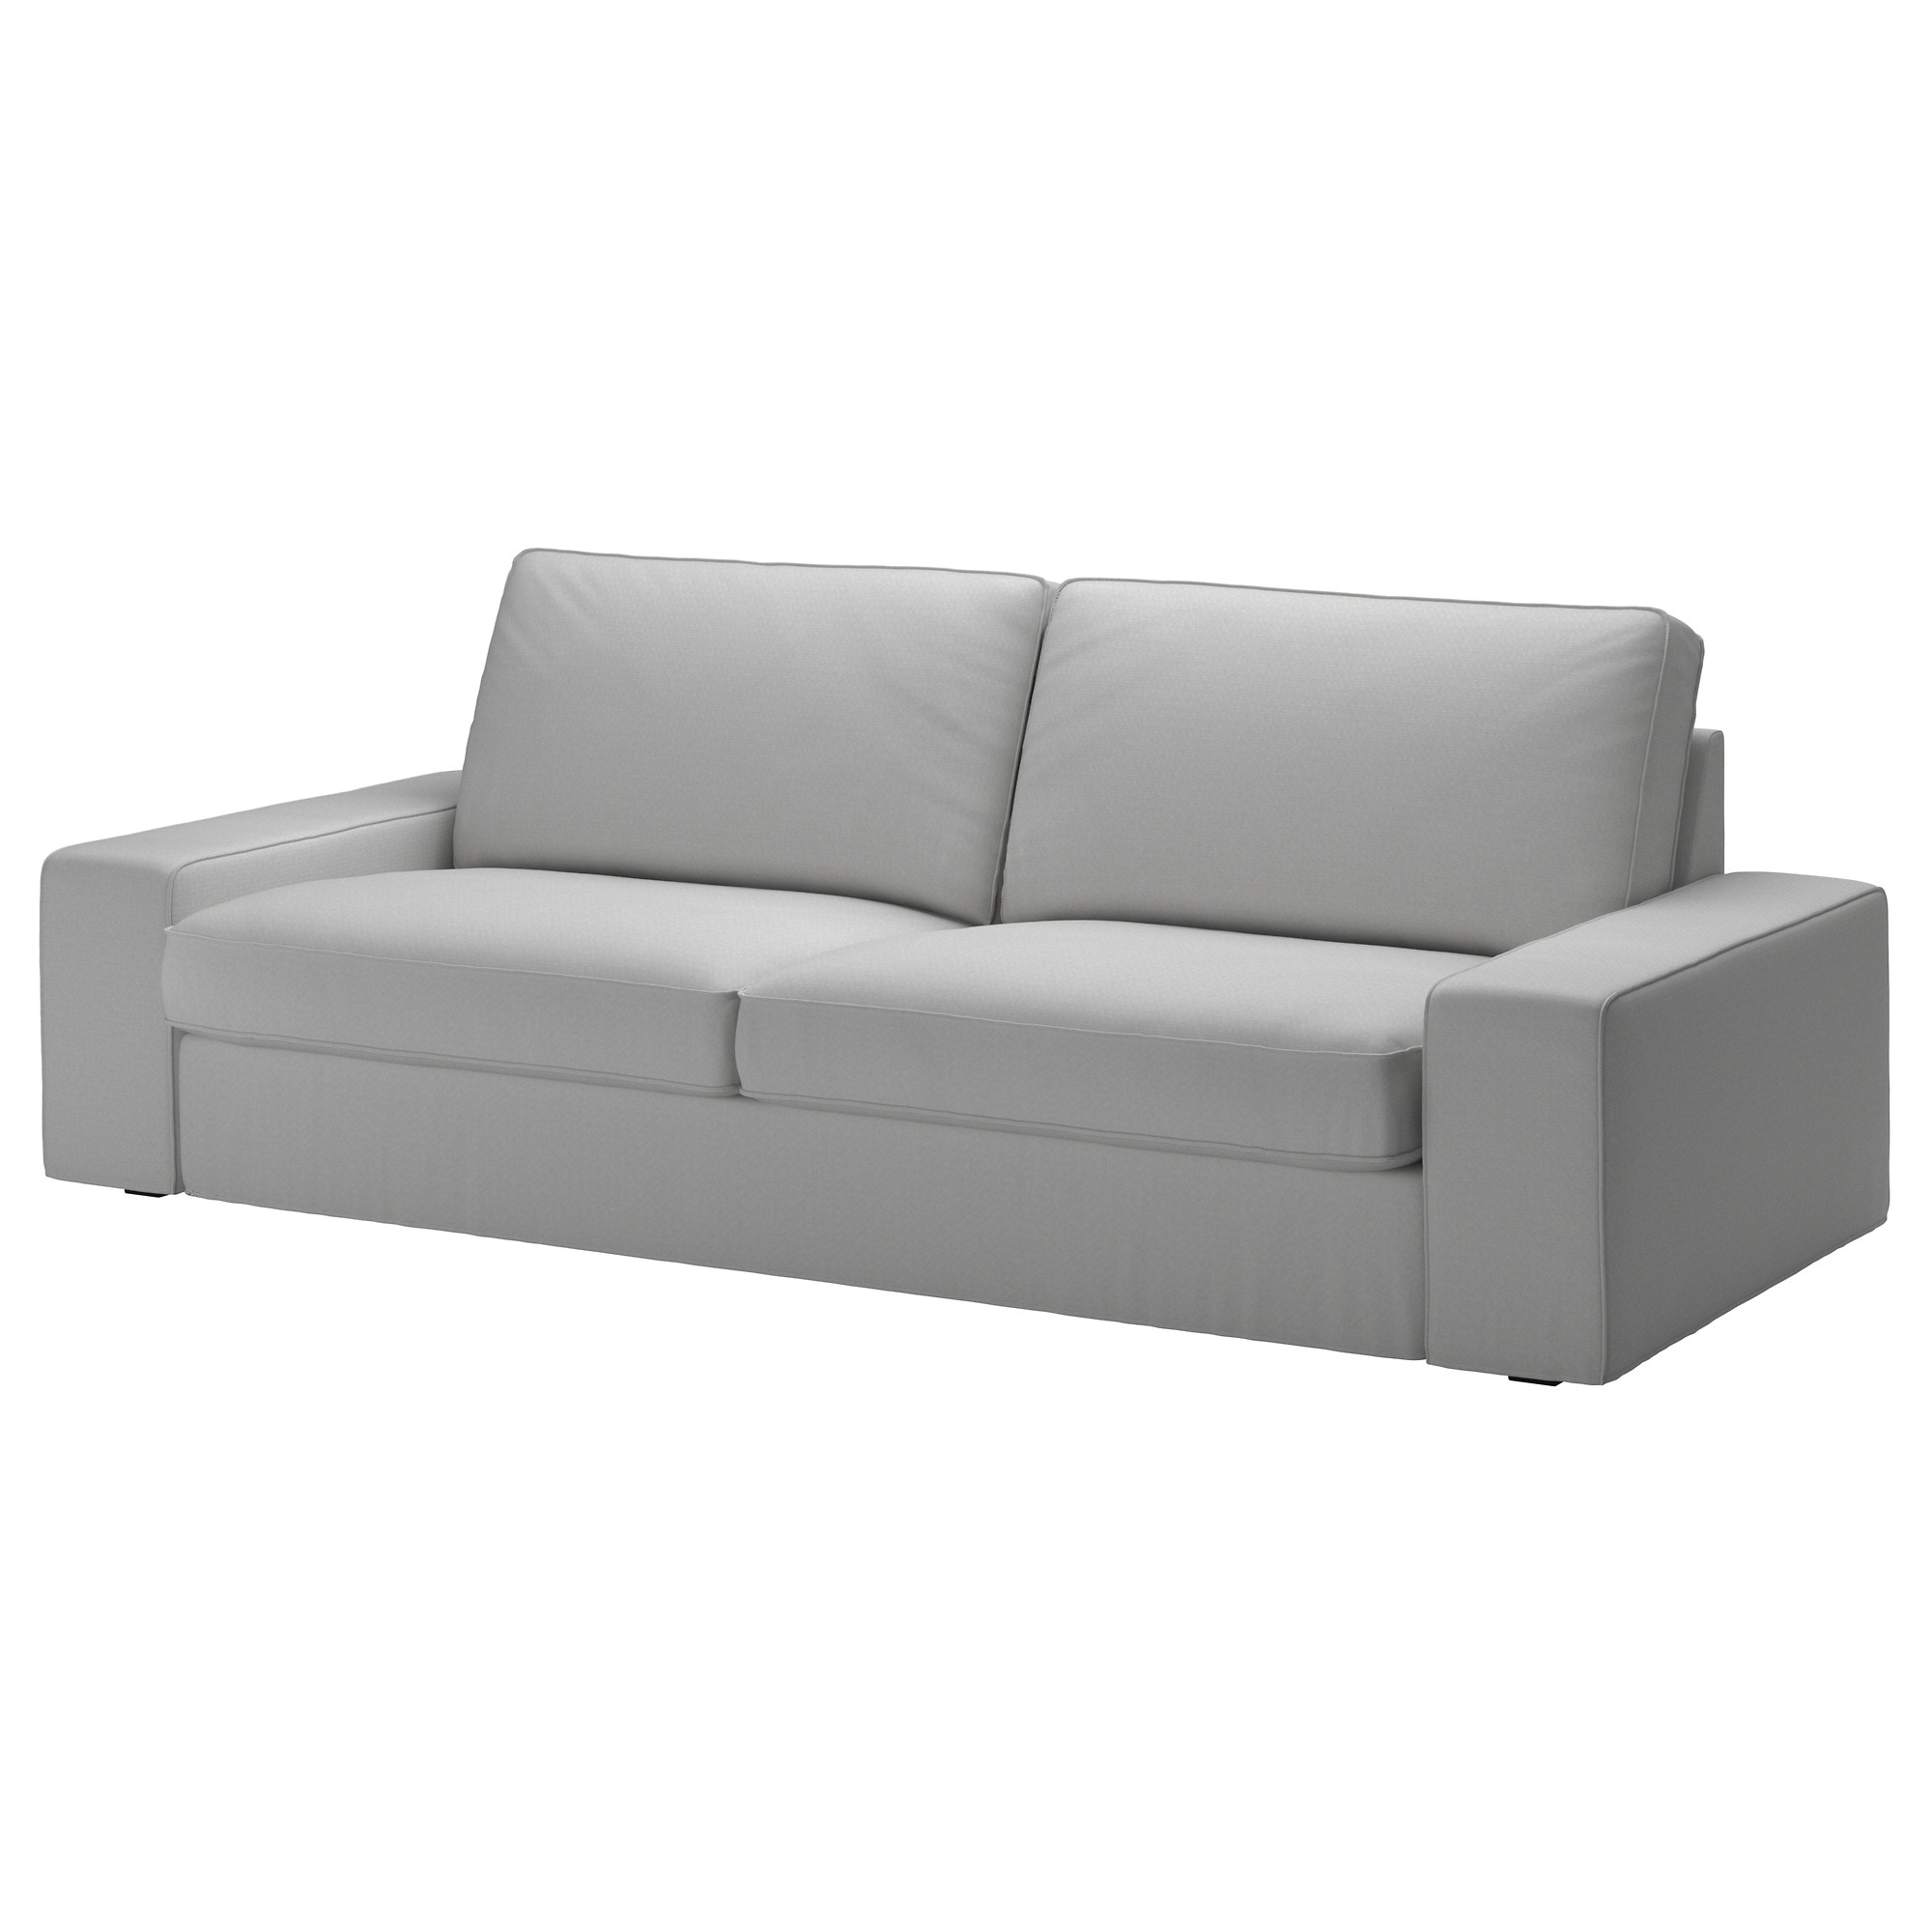 KIVIK Sofa cover Orrsta light gray IKEA